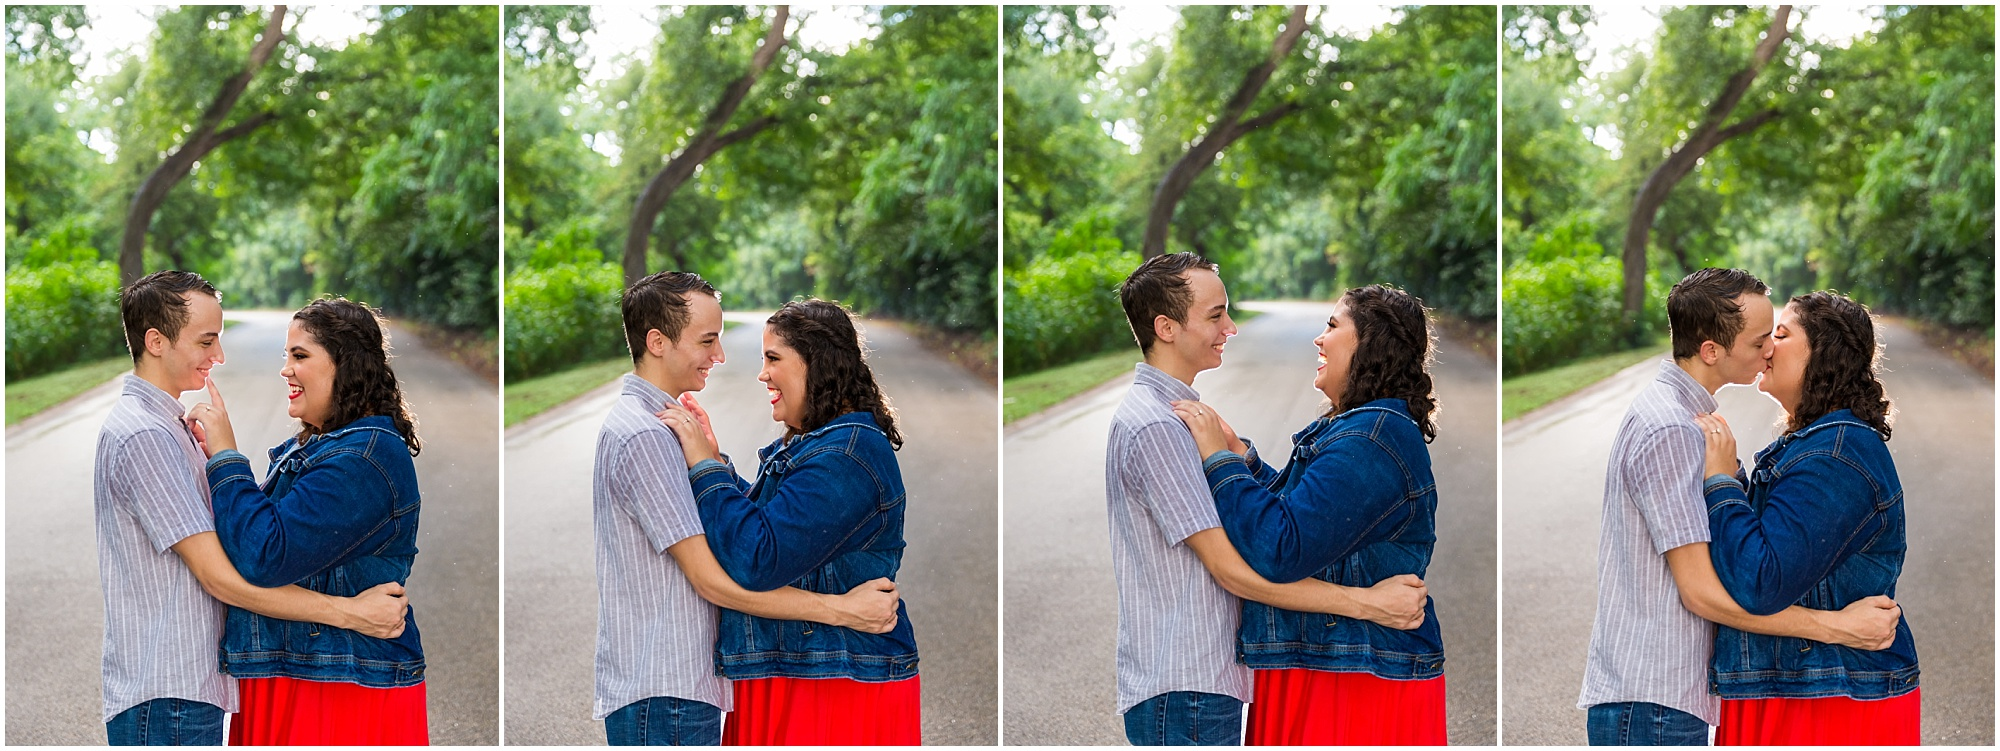 A bride-to-be laughs with her fiance as they are standing in the rain during their engagement photos in Cameron Park - Jason & Melaina Photography - www.jasonandmelaina.com